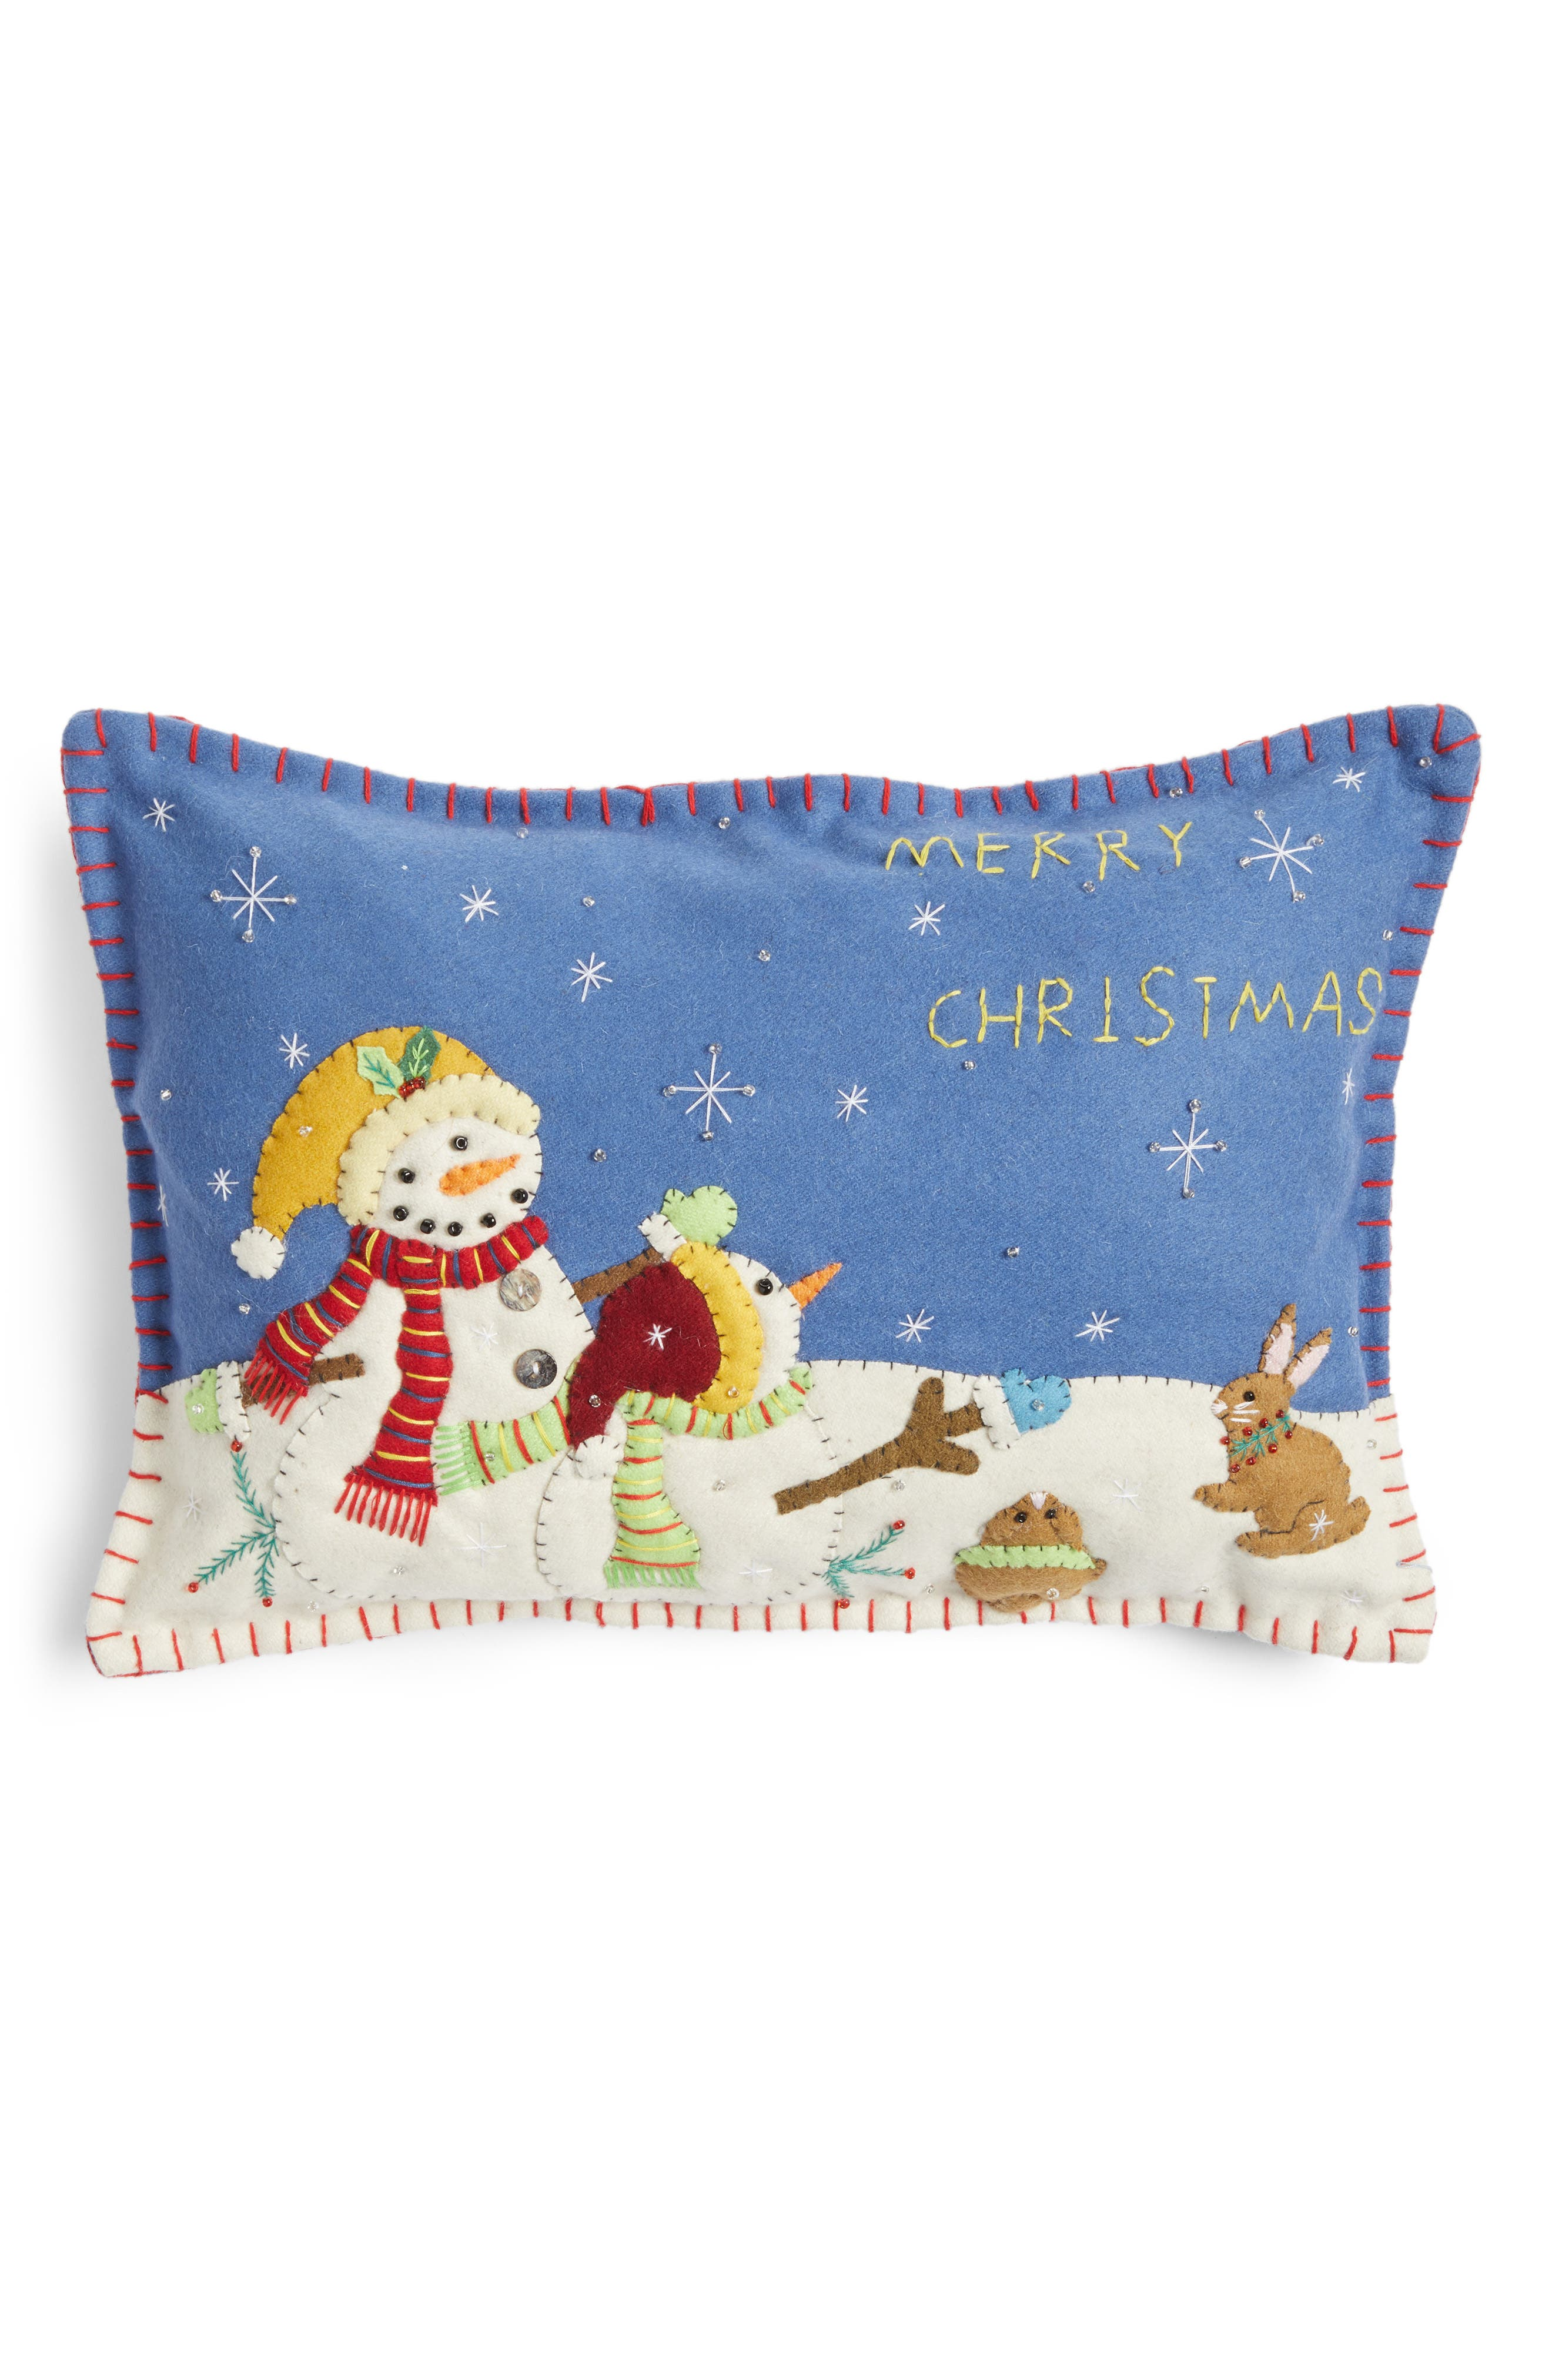 New World Arts Snowman Pillow